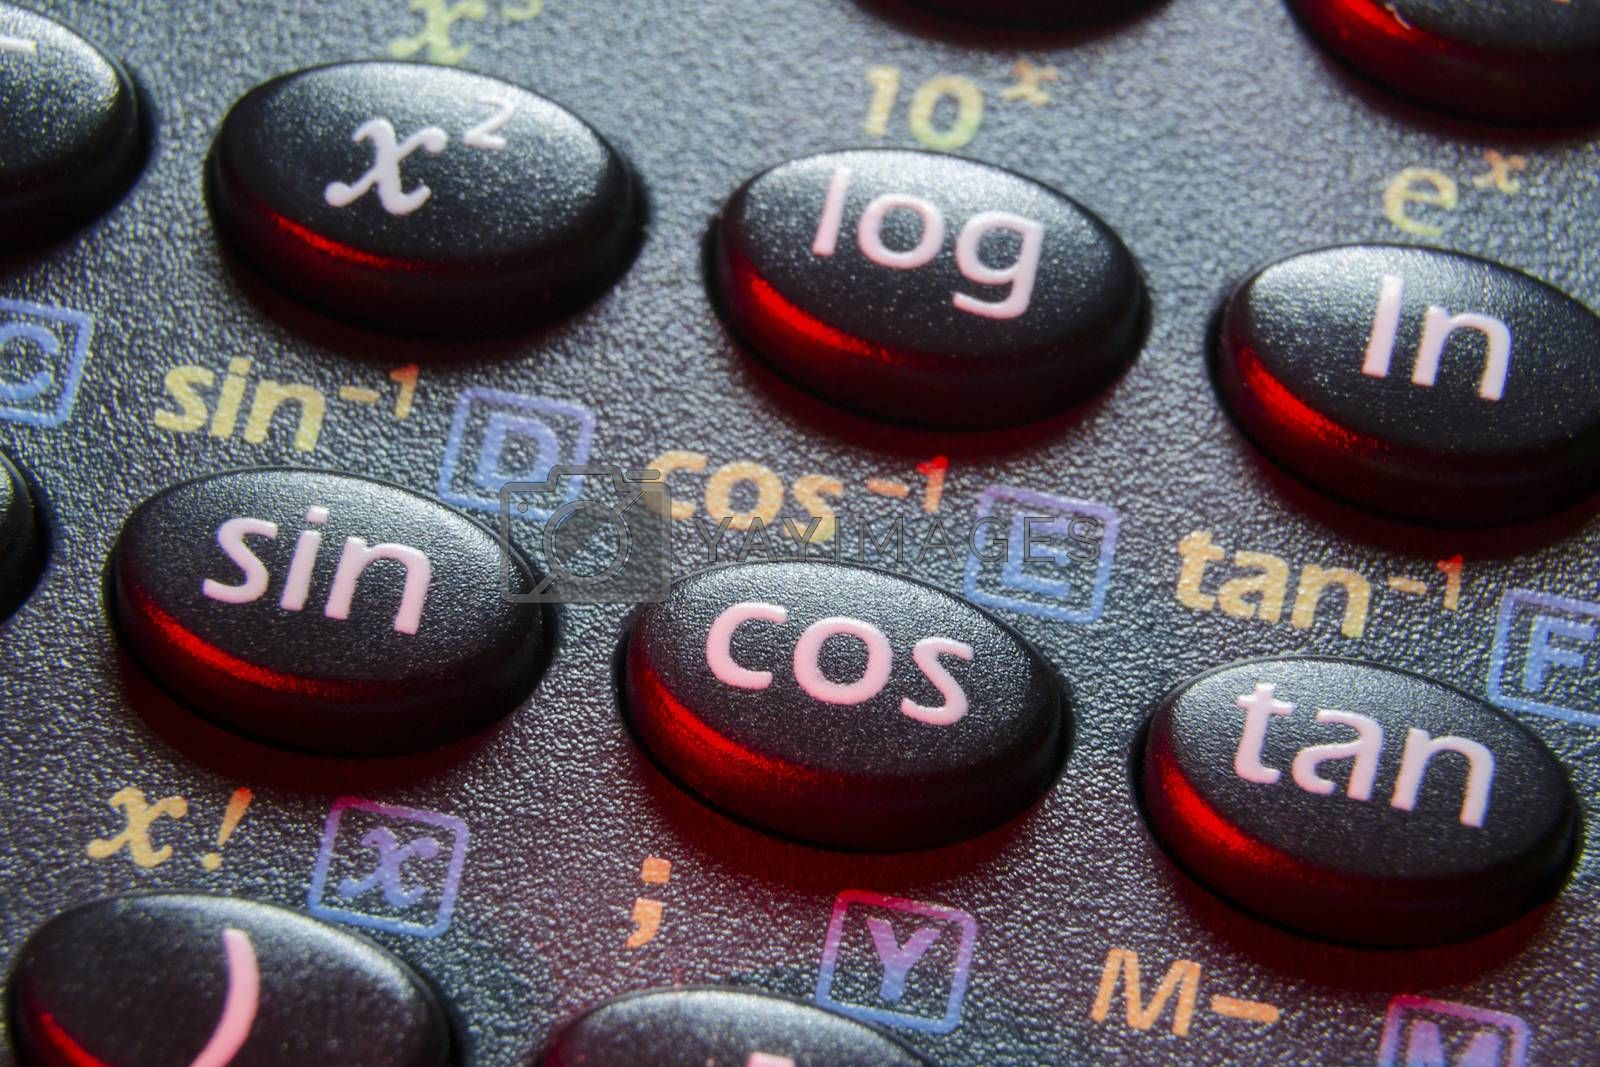 trigonometry functions push buttons of scientific calculator; focus on cos button